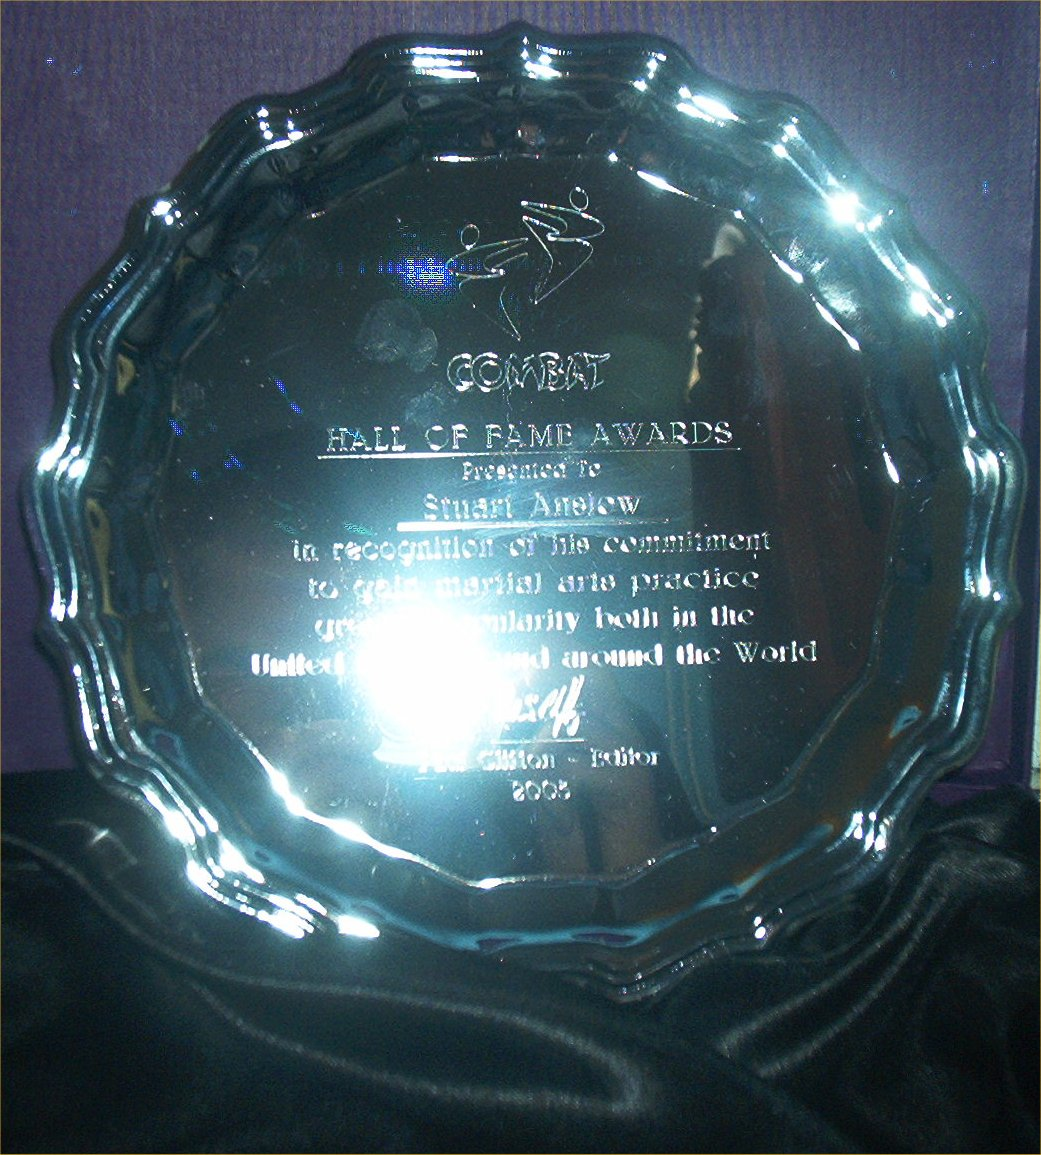 Hall of Fame Award, 2003